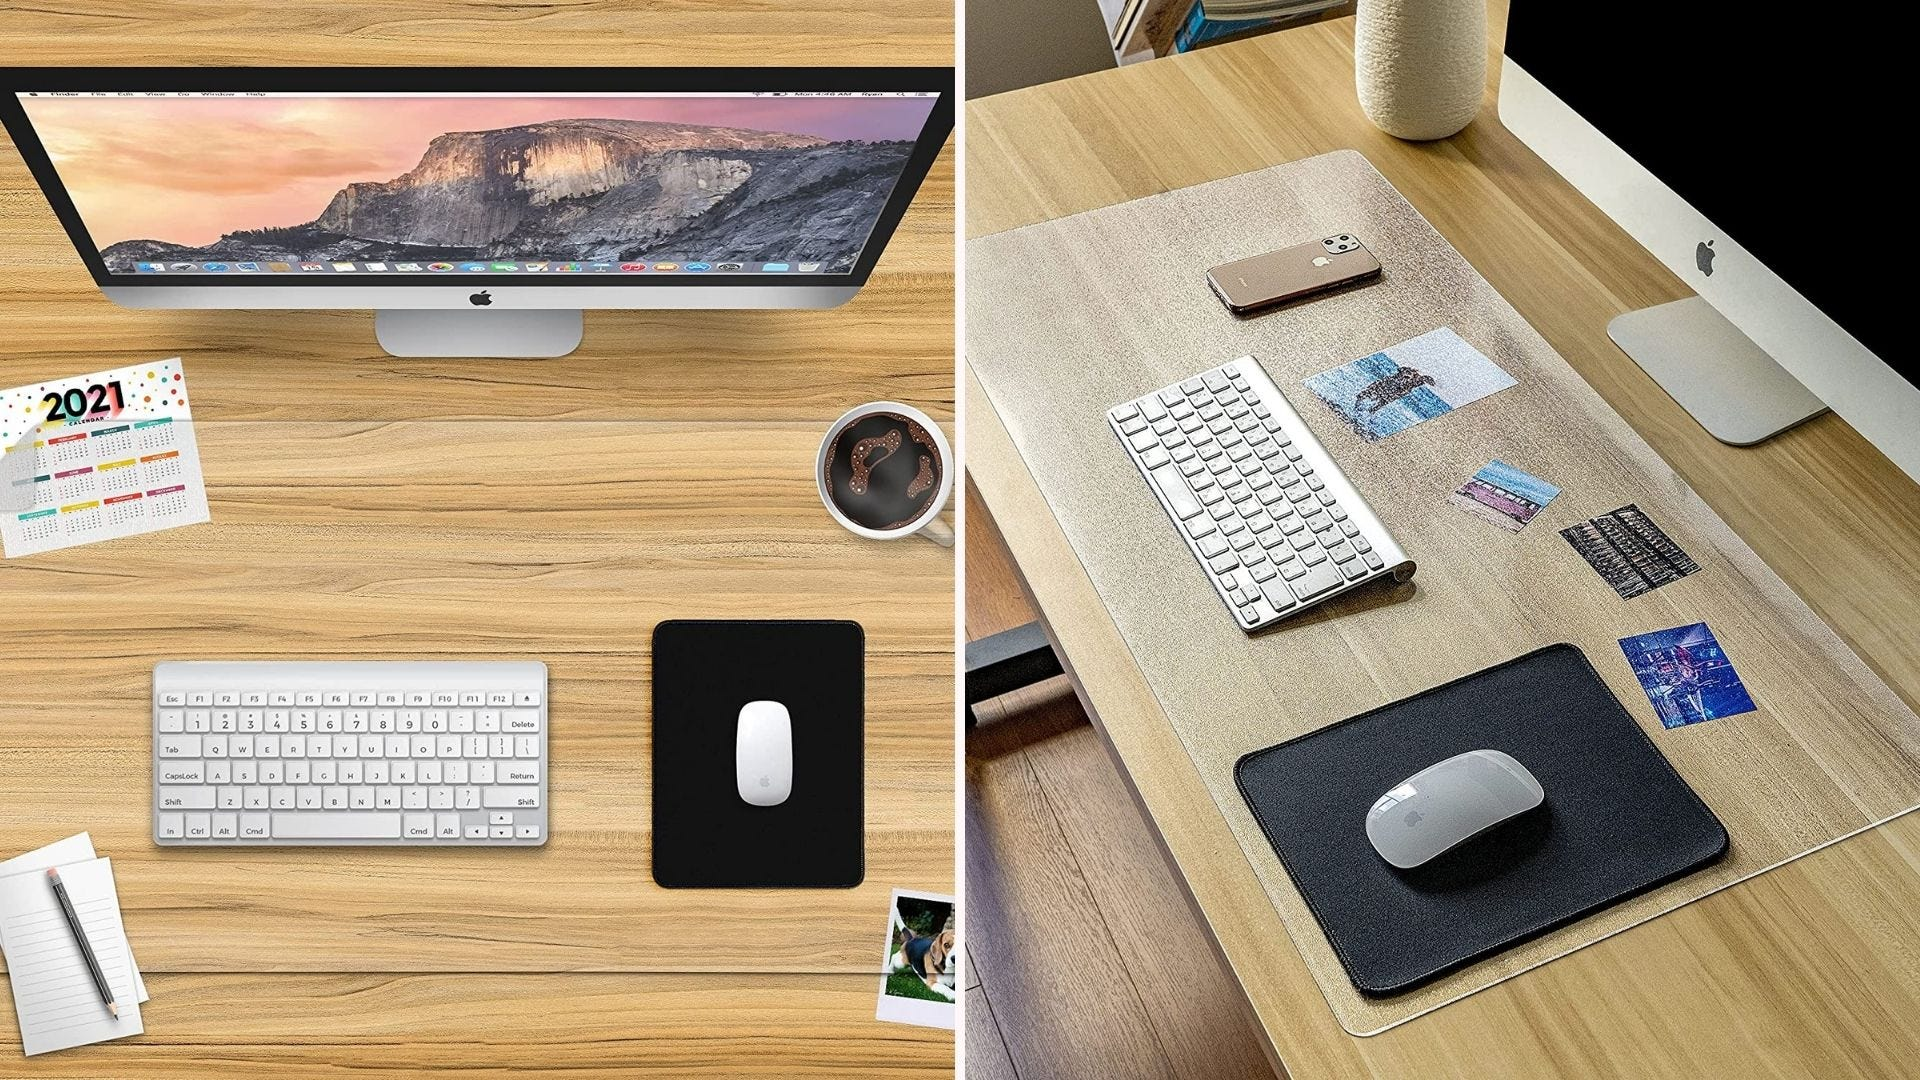 On the left, a bird's eye view of a clear desk pad beneath a keyboard, mousepad, and work accessories. On the right, the pad is illuminated by a nearby window.